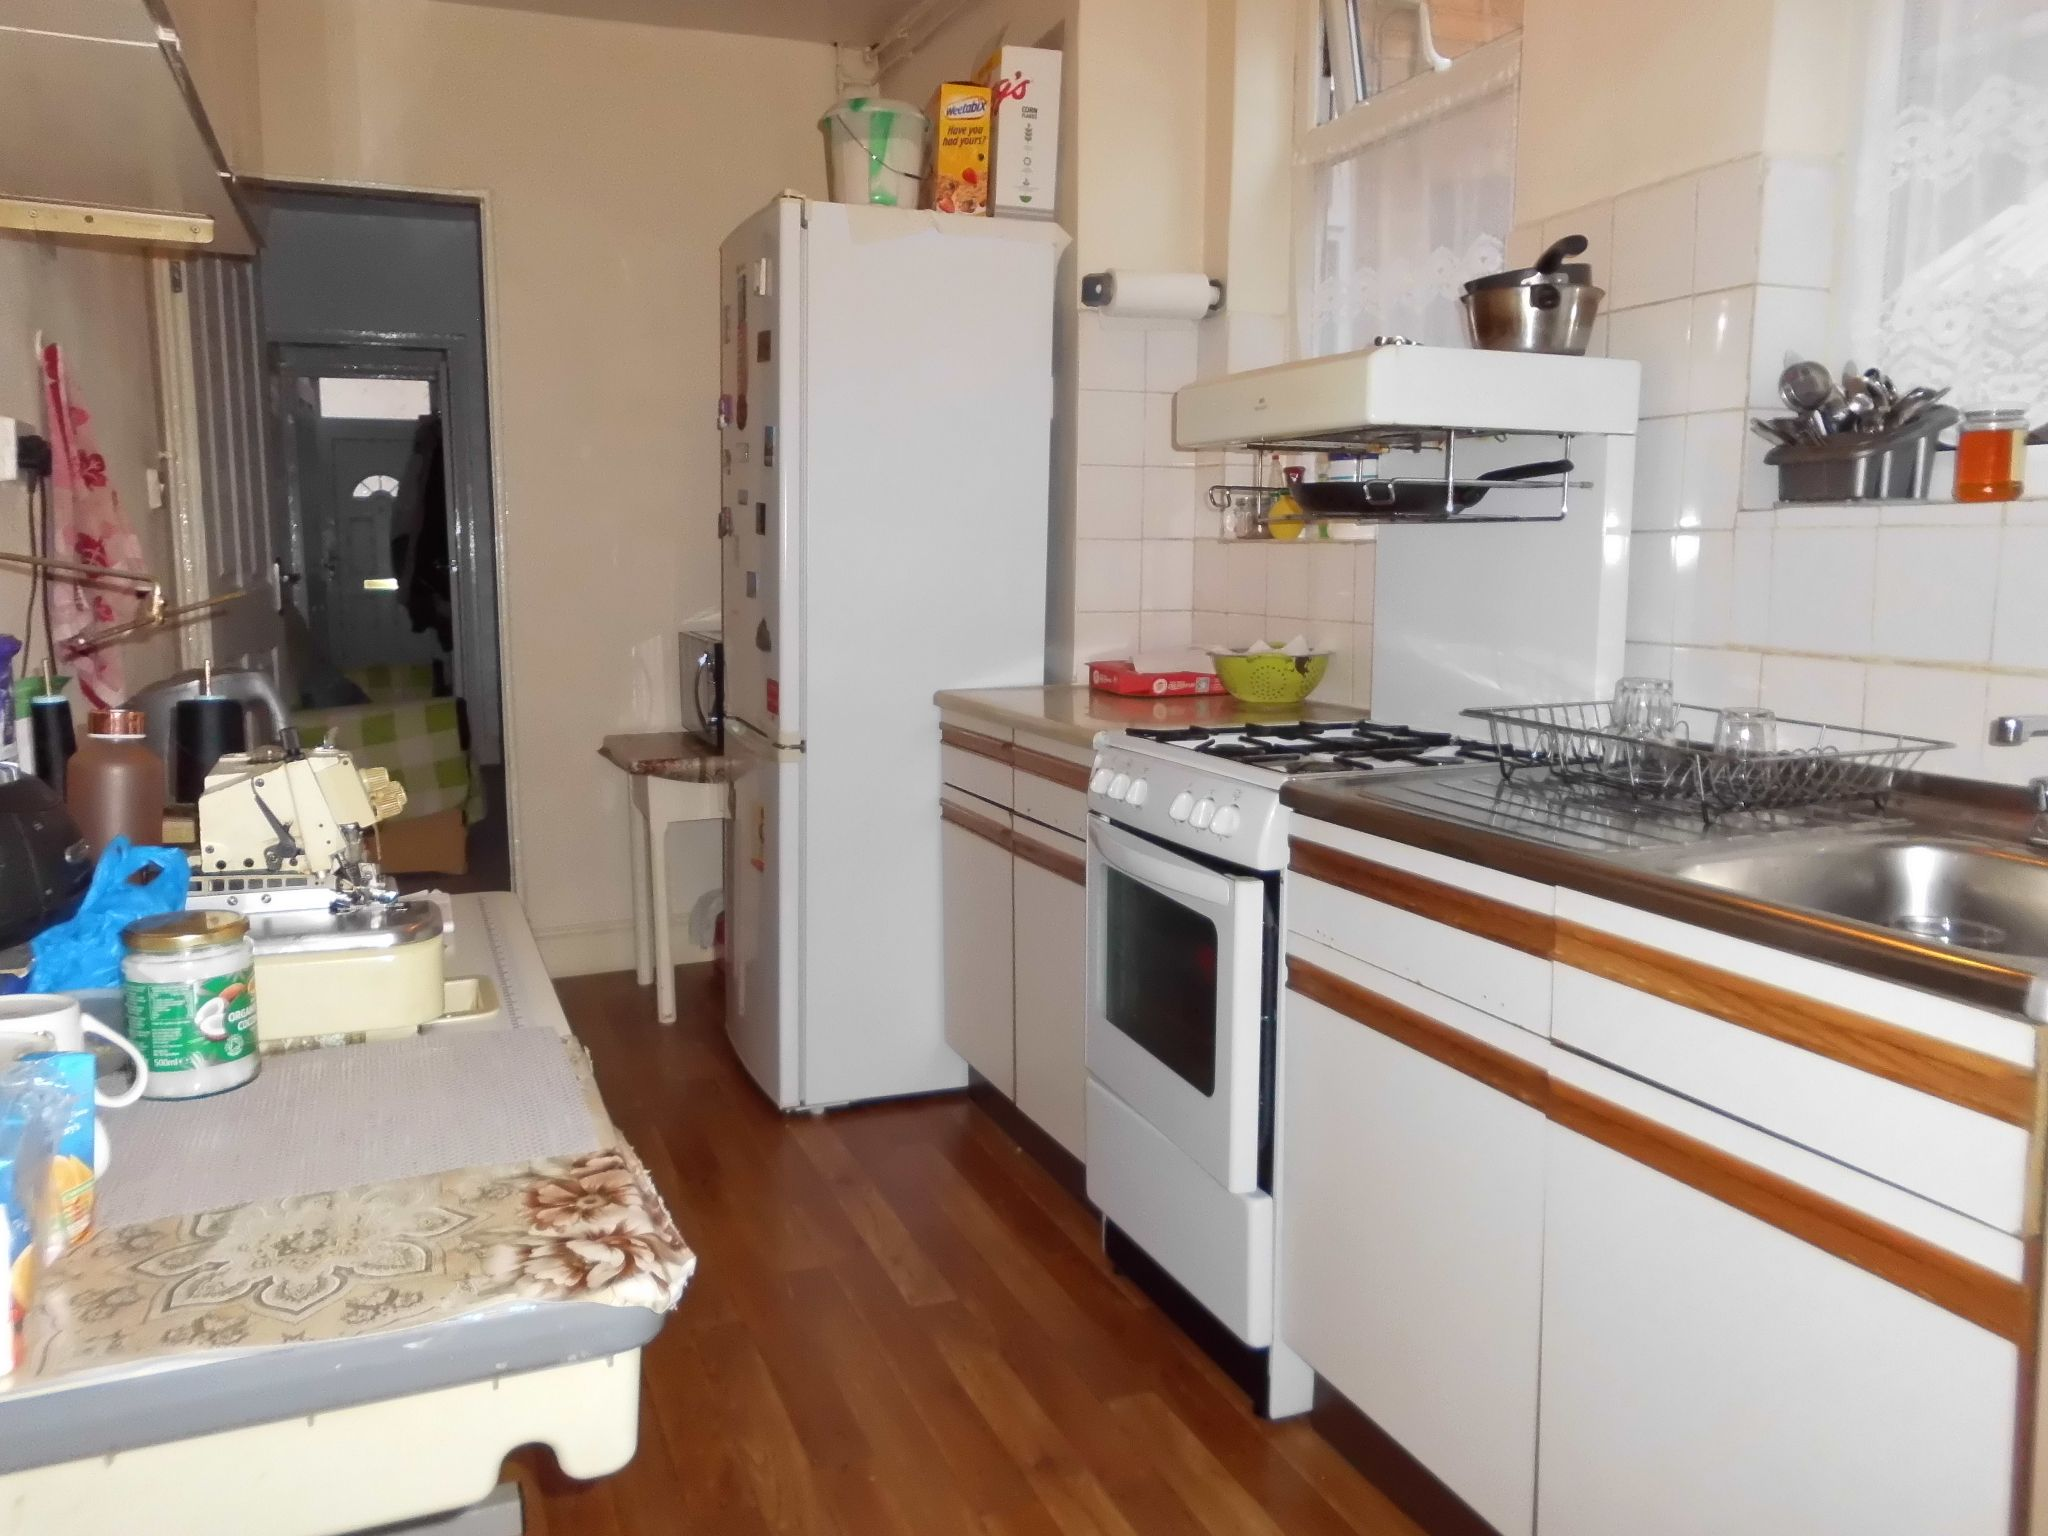 3 bedroom mid terraced house SSTC in Leicester - Photograph 7.